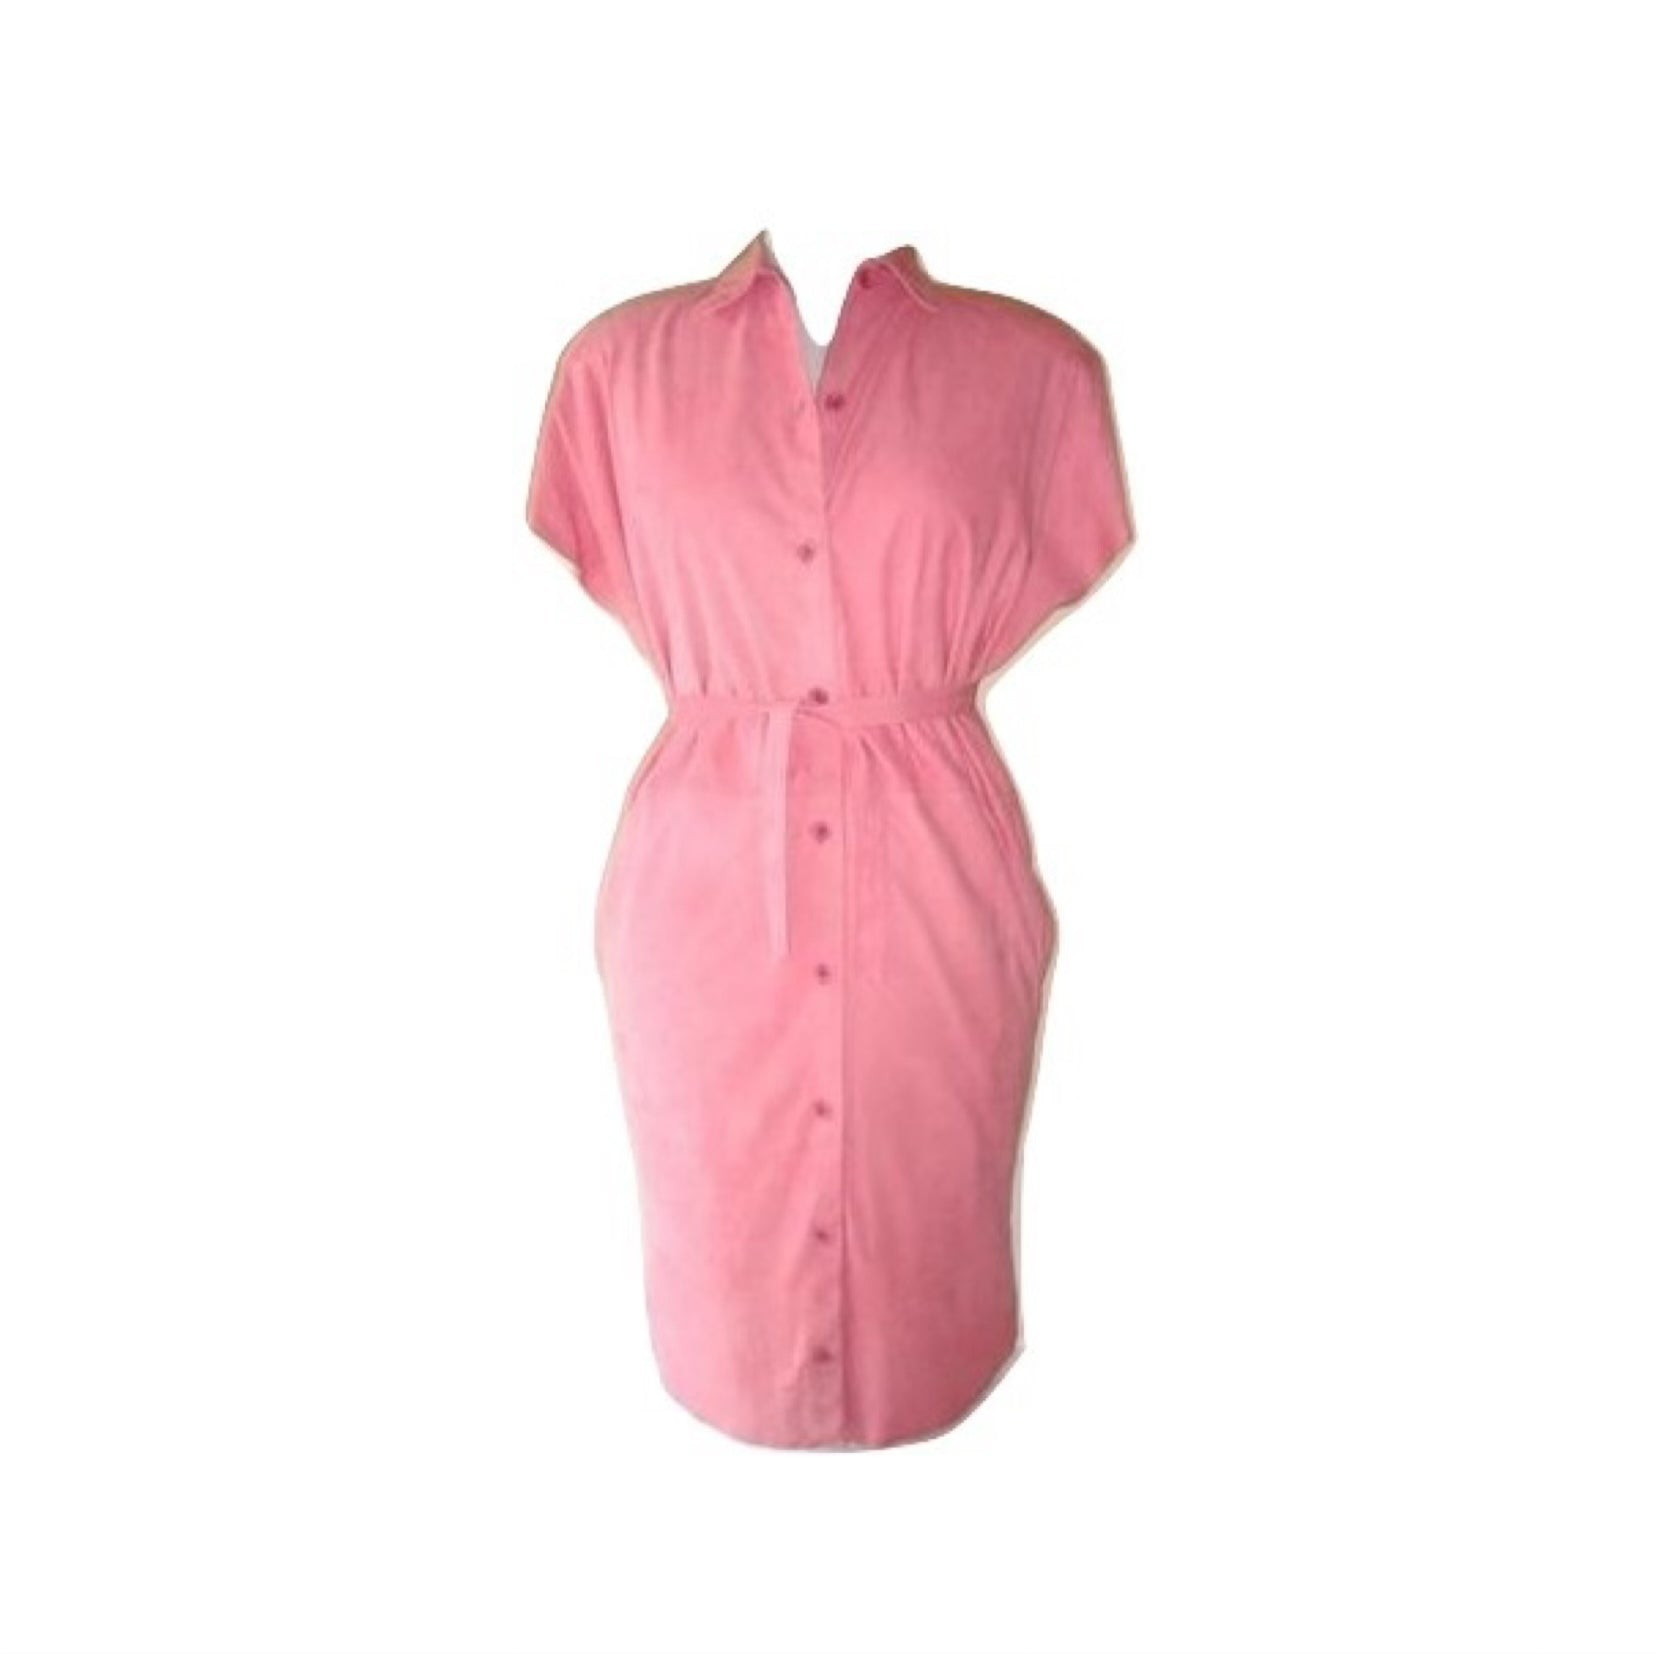 Vintage ALICIA HERRERA Pink Suede 80s Short Sleeve Shirt Dress